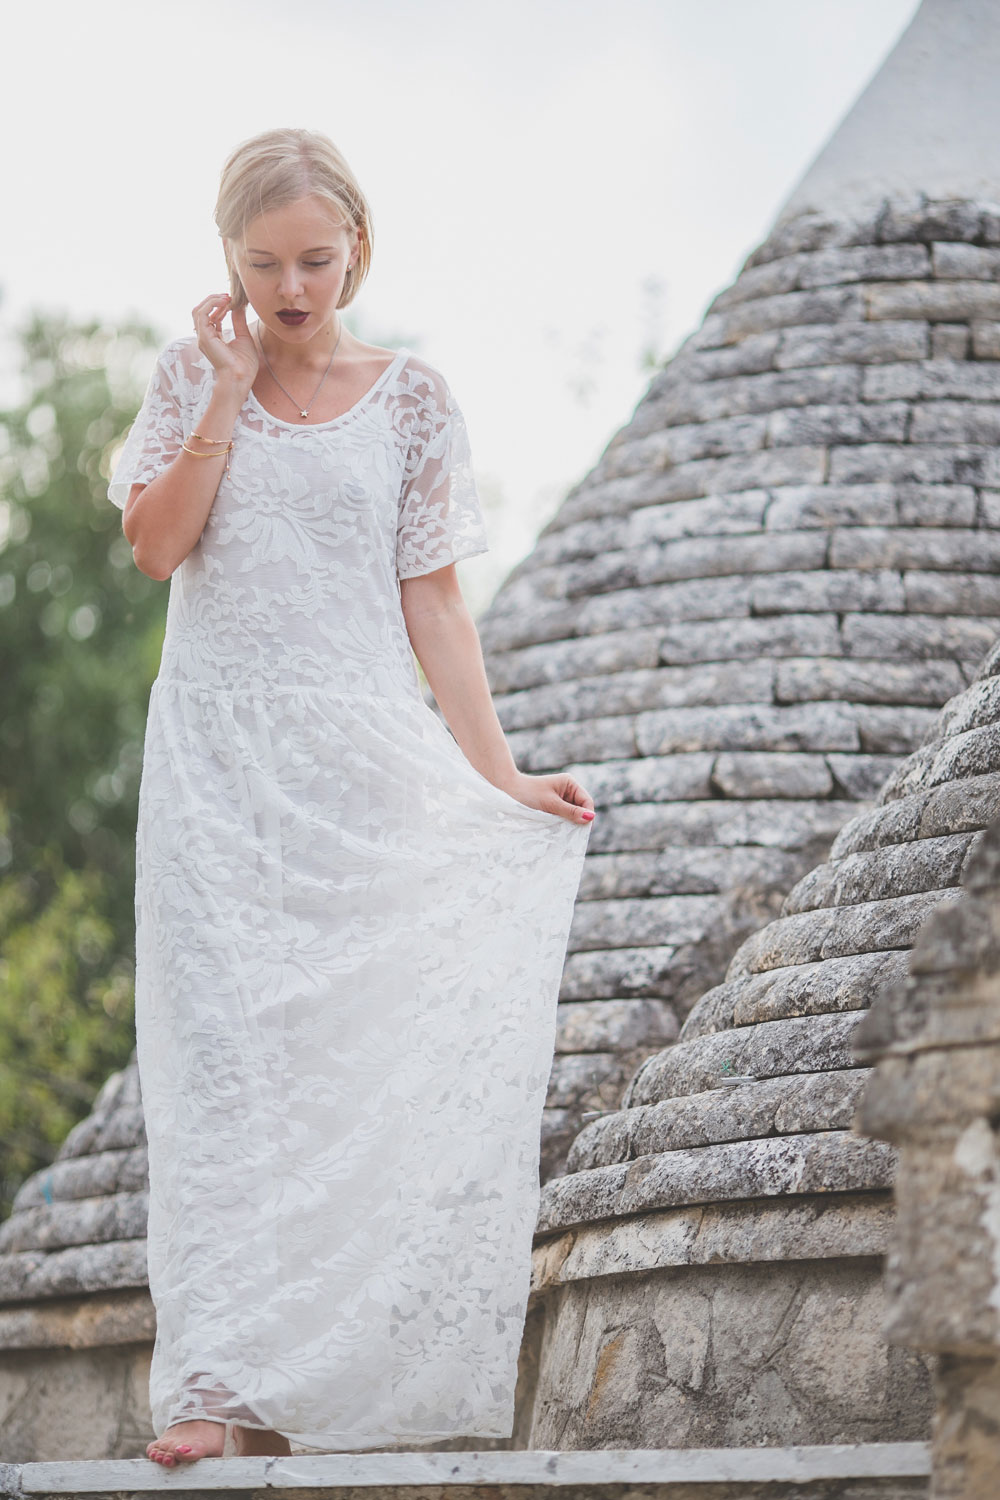 darya-kamalova-thecablook-fashion-lifestyle-blogger-from-thecablook-com-in-agri-trulli-in-puglia-south-italy-wearing-gat-rimon-white-maxi-lace-dress-4015